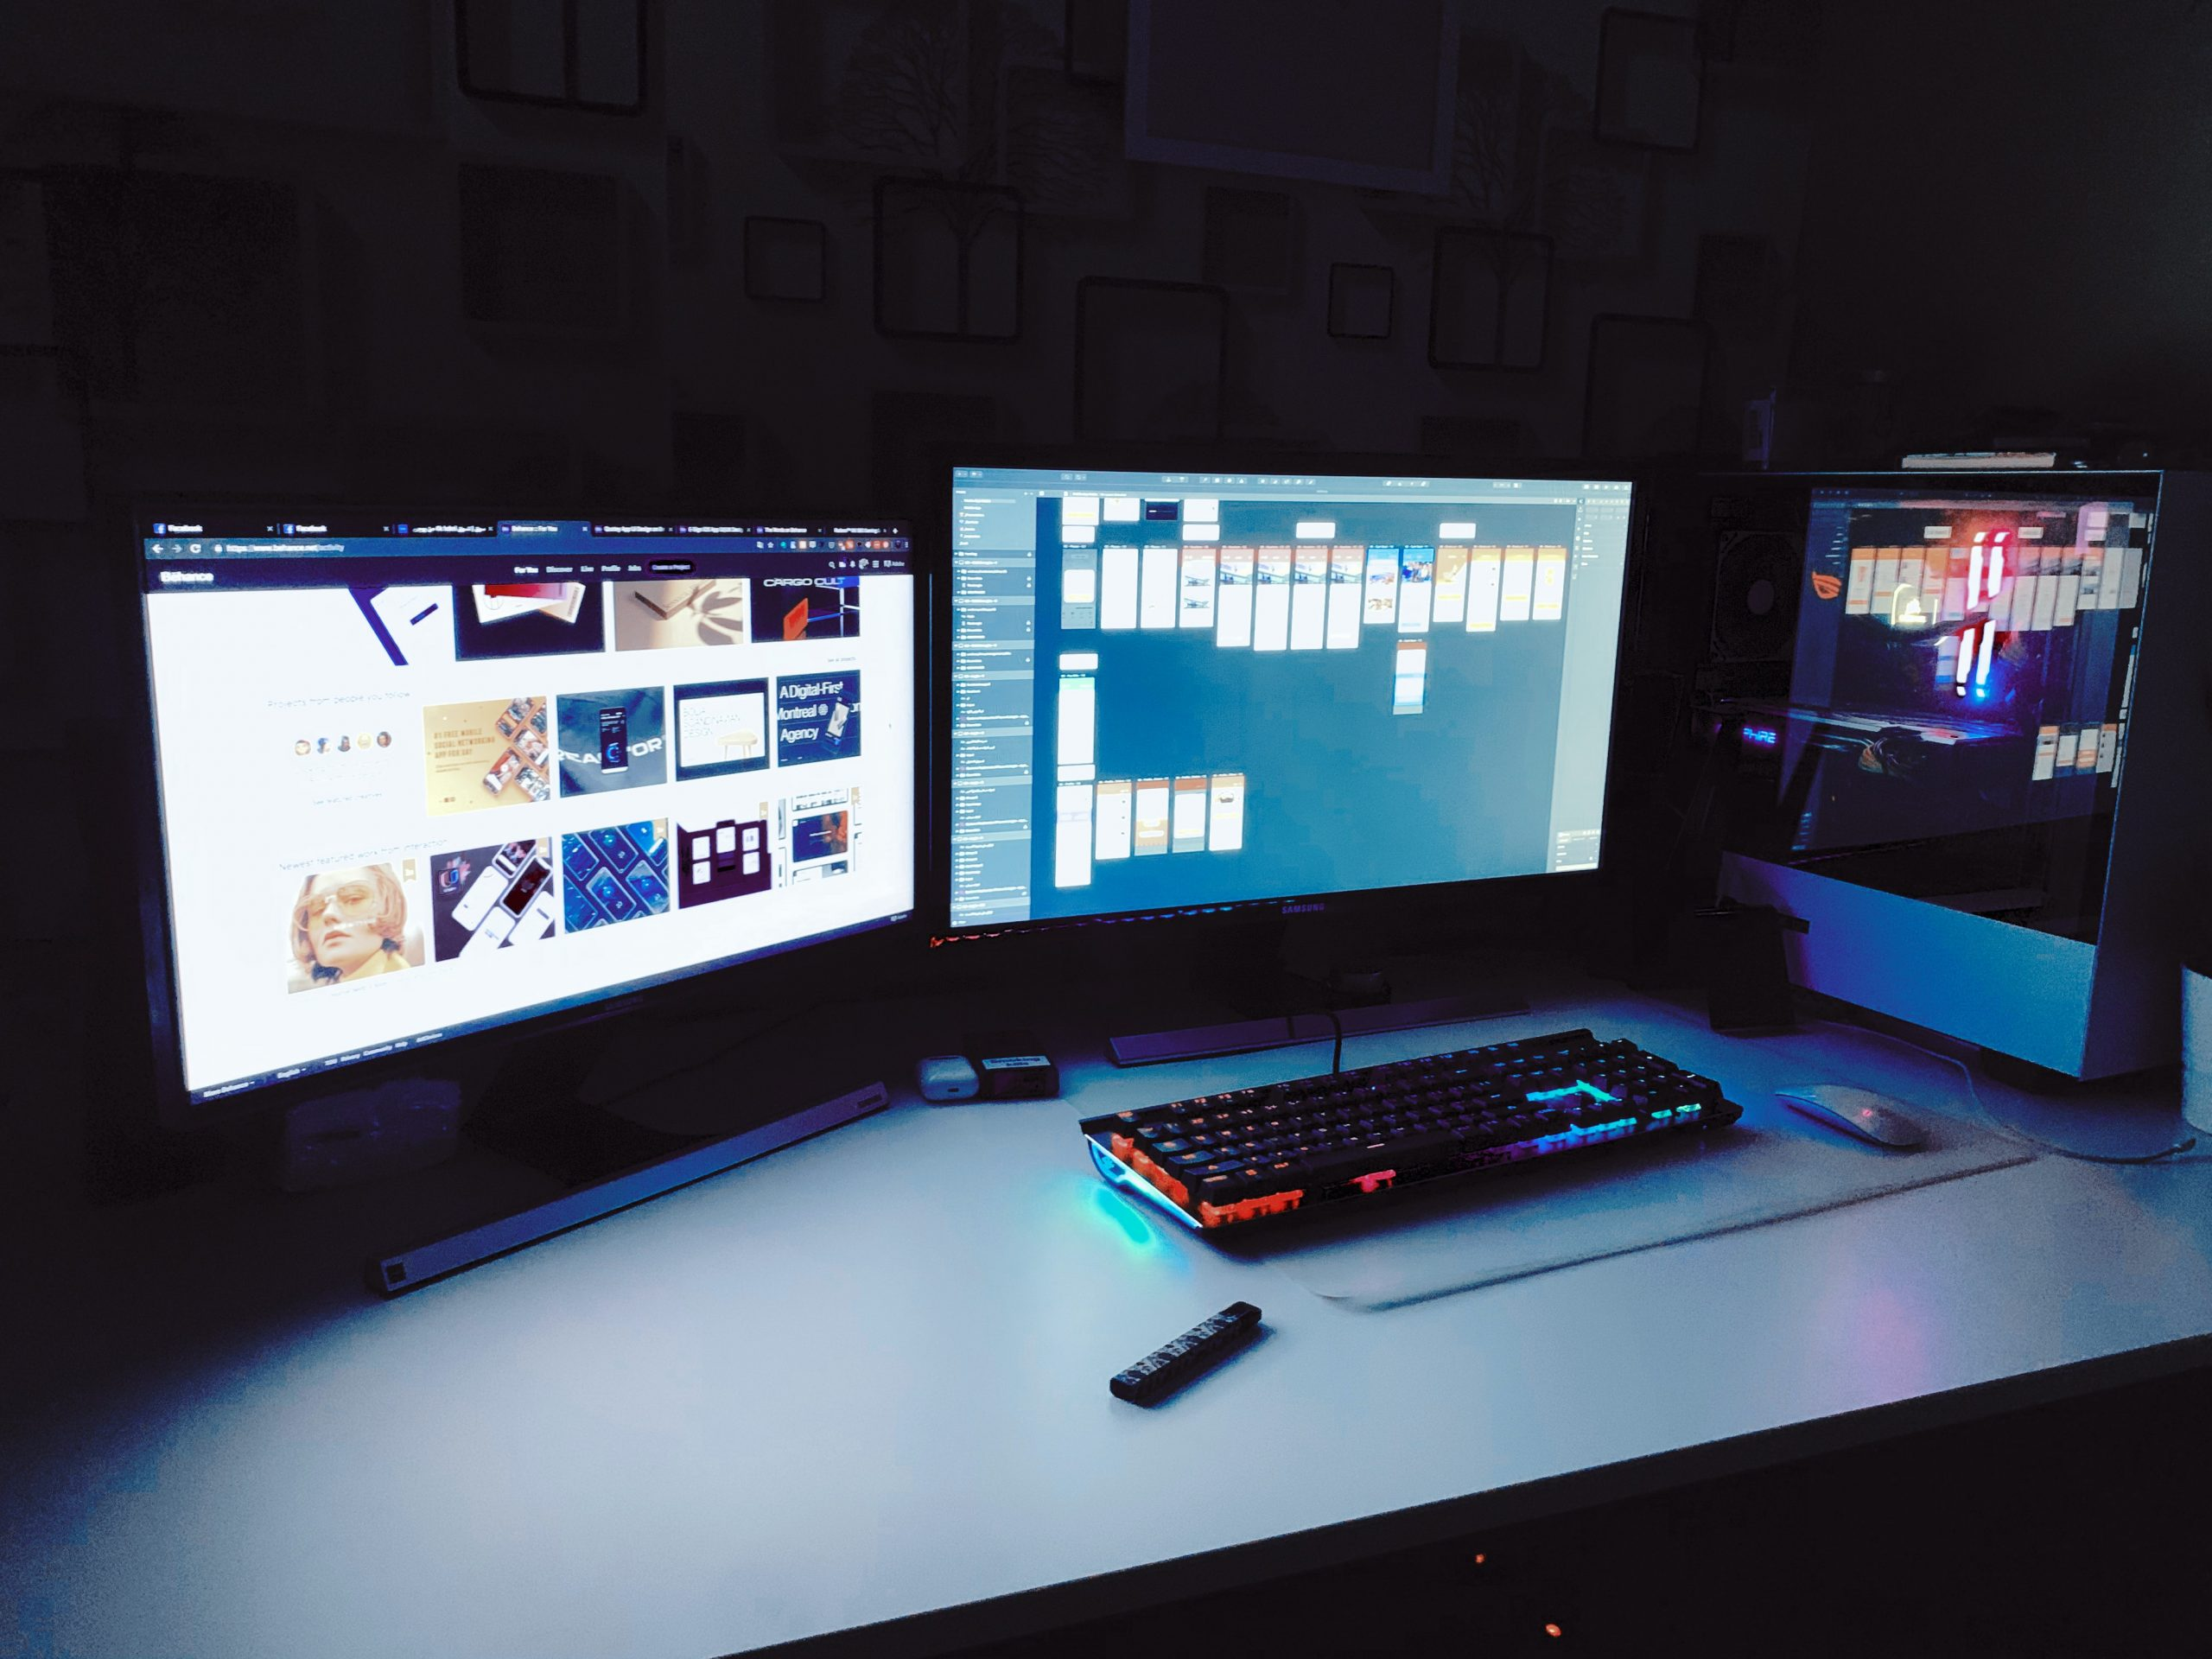 Gaming station con dos monitores